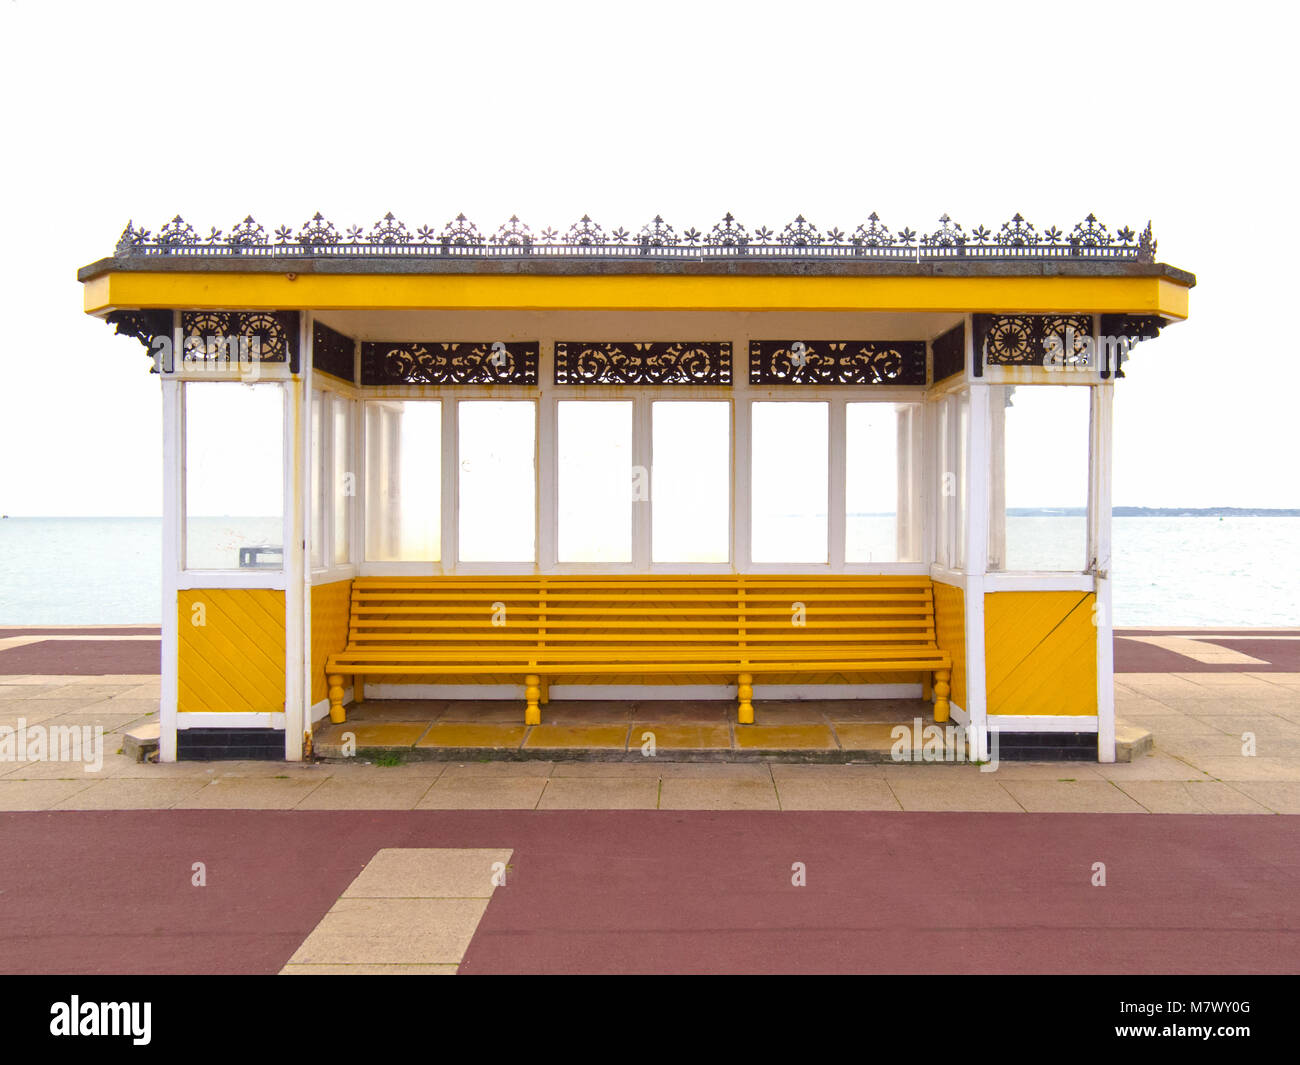 Victorian seaside town coastal wind shelter in yellow and white street furniture - Stock Image